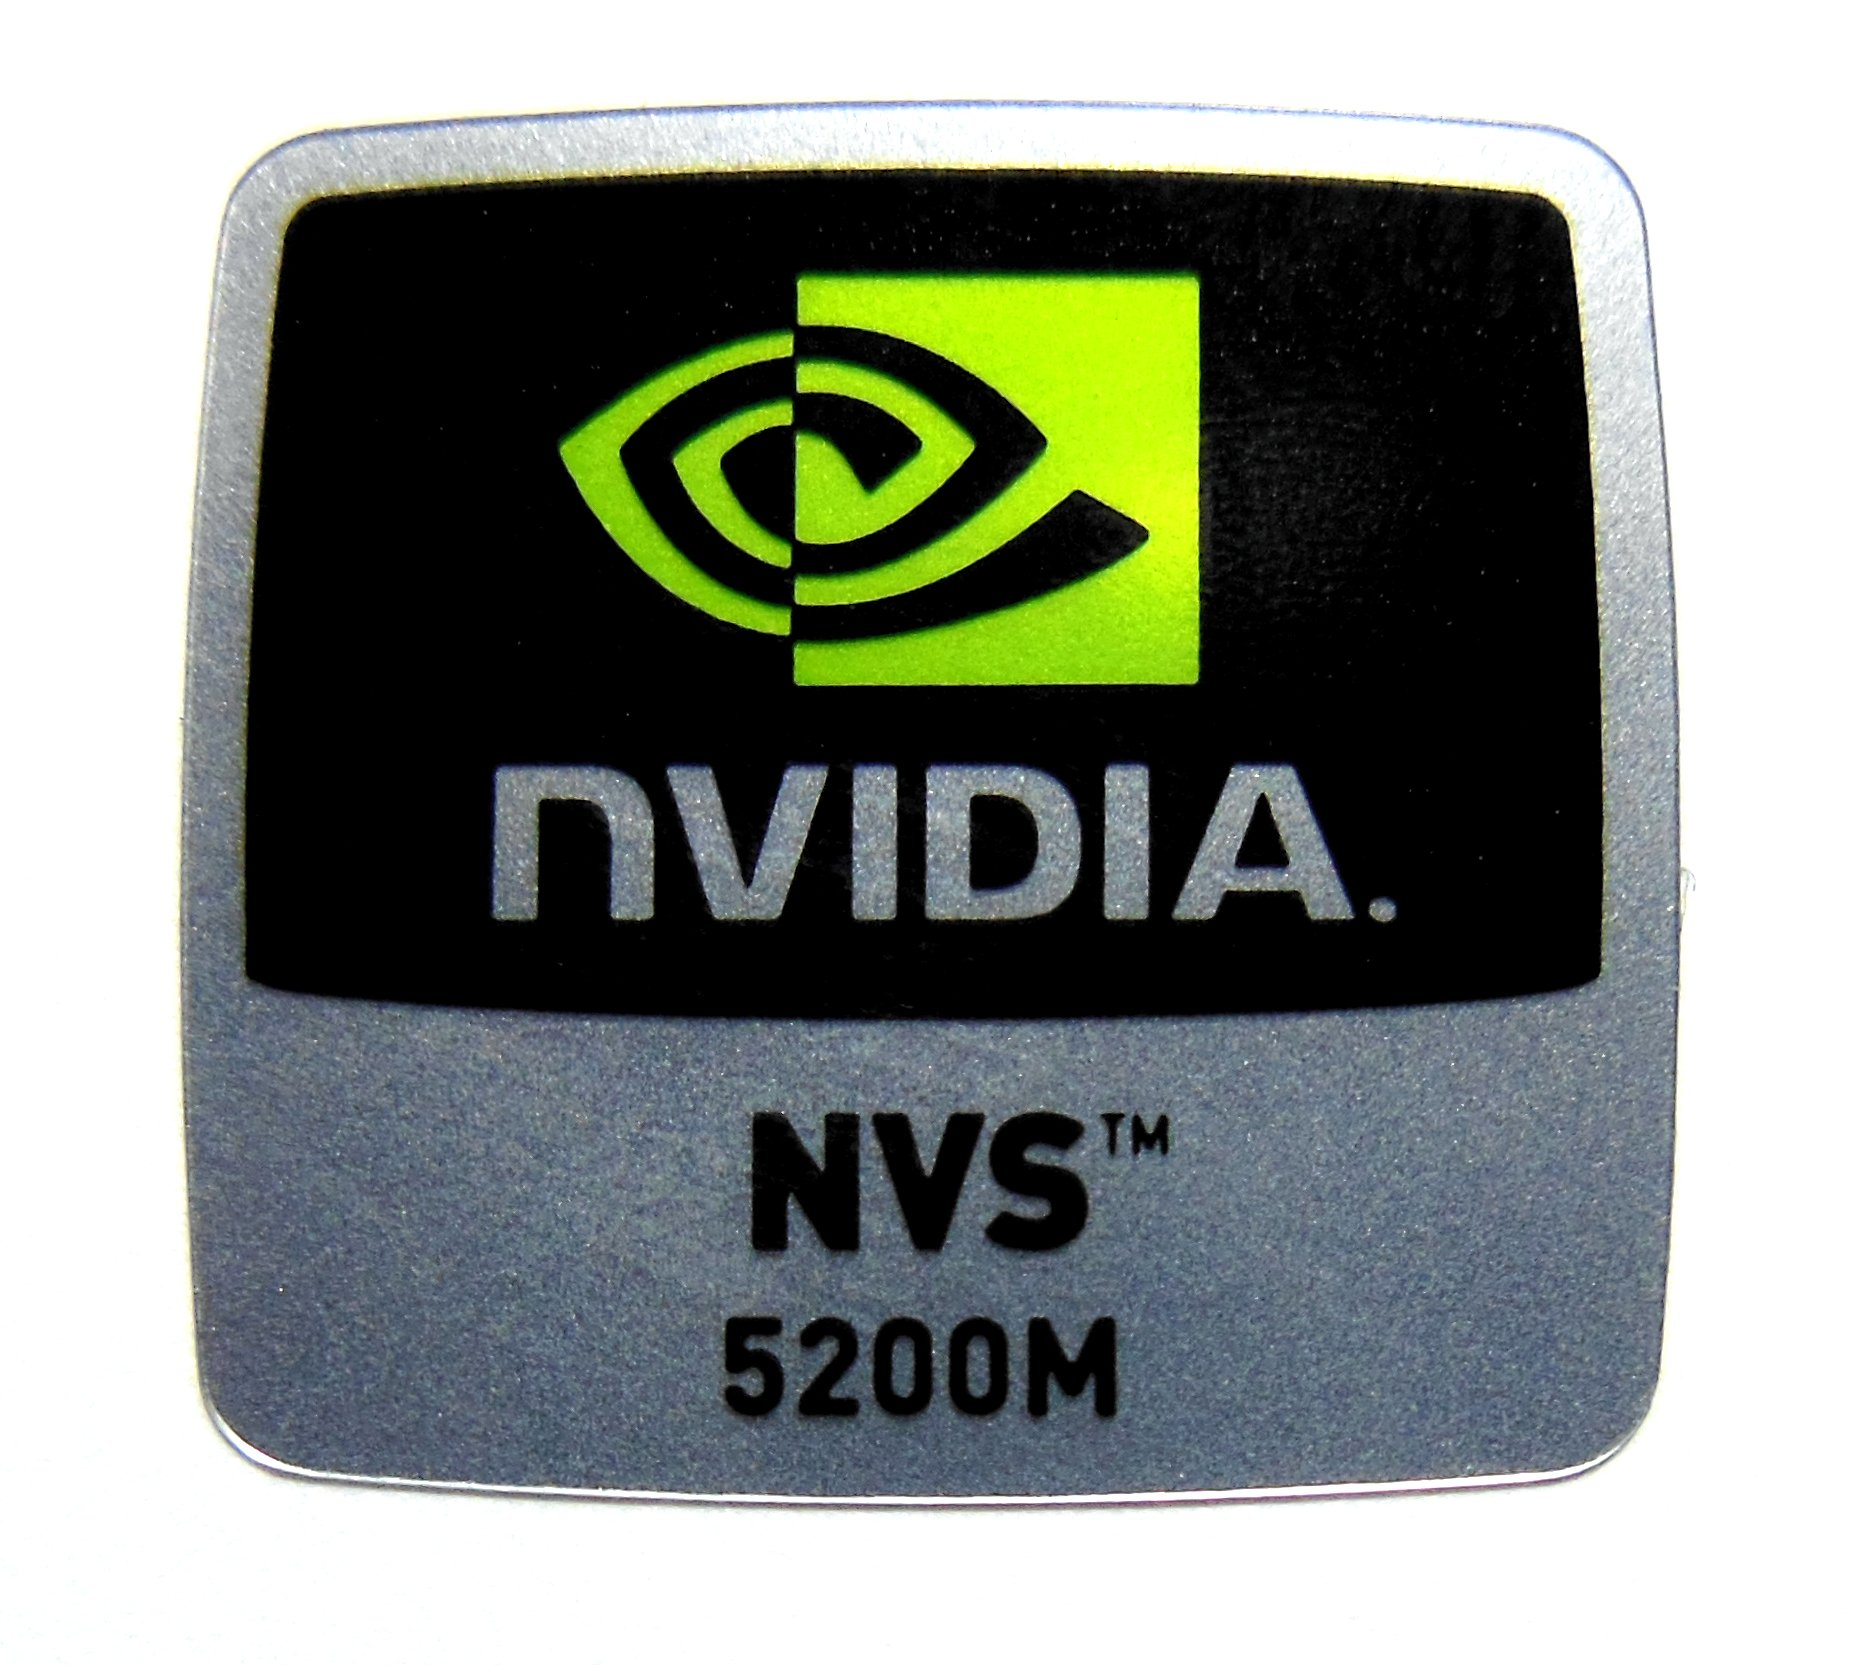 Original NVIDIA NVS 5200M Sticker 18mm x 18mm [864]